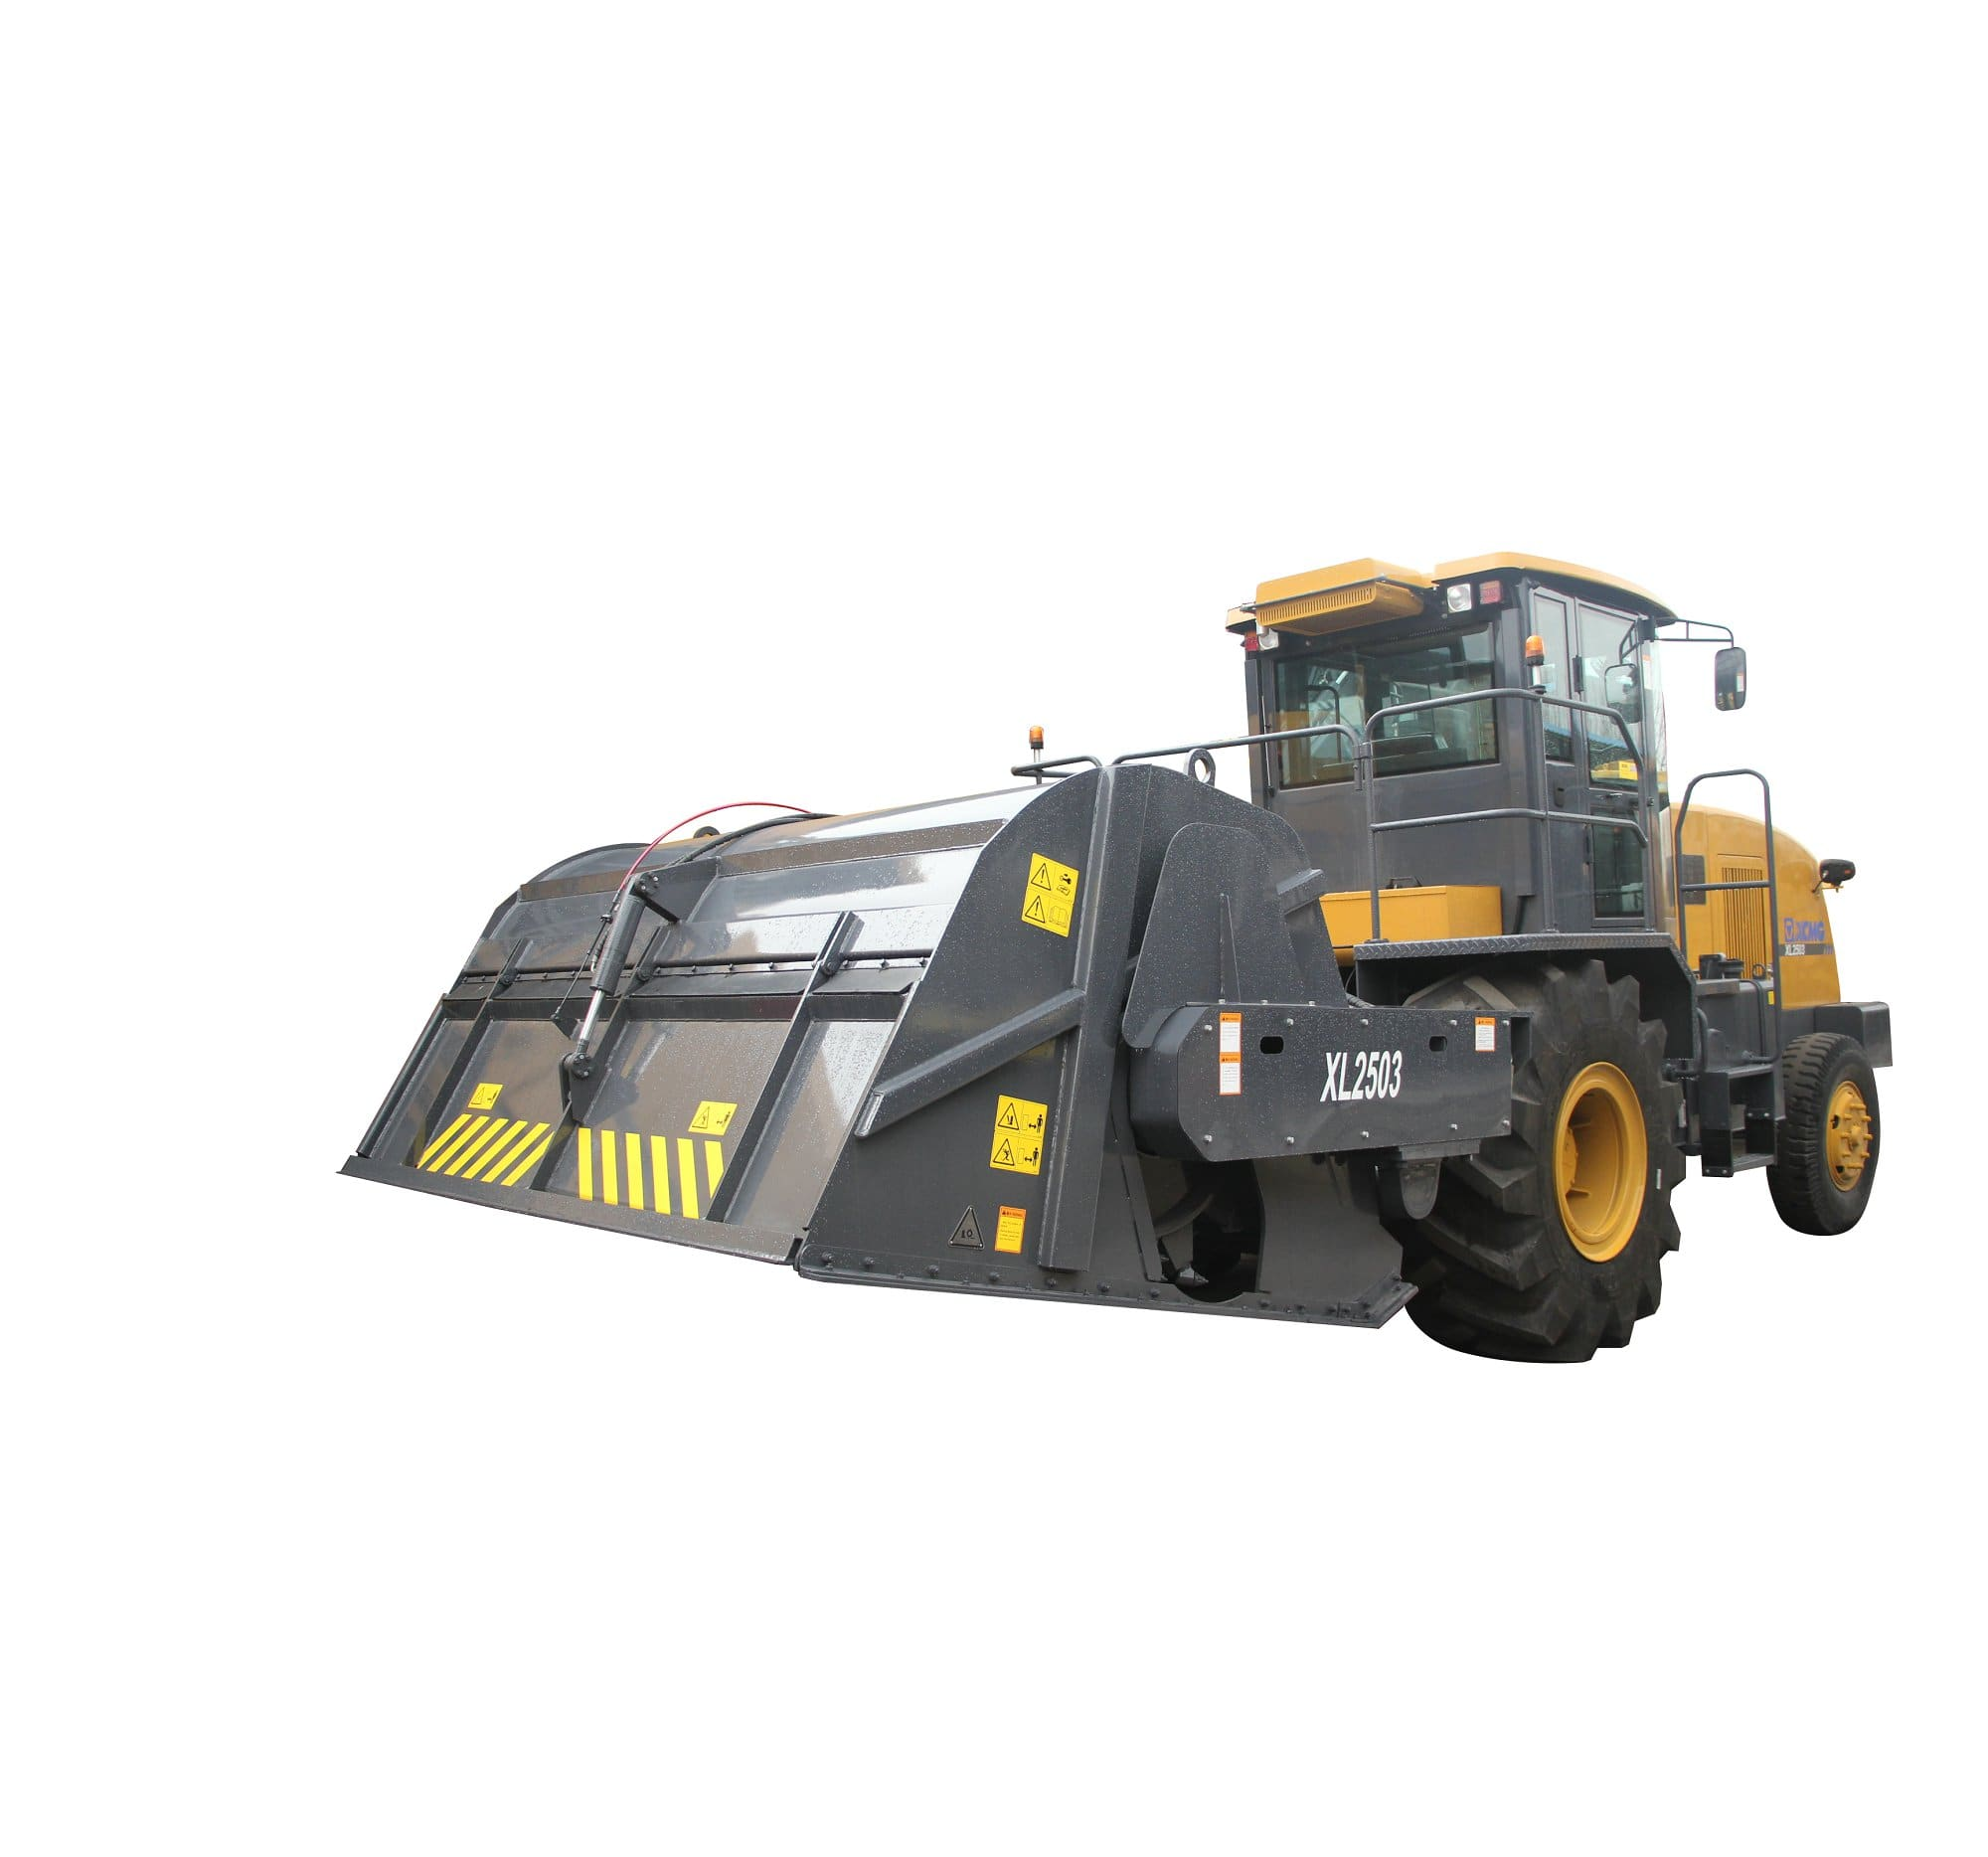 XCMG Official Road Stabilized Soil Mixing Machine XL2503 For Sale